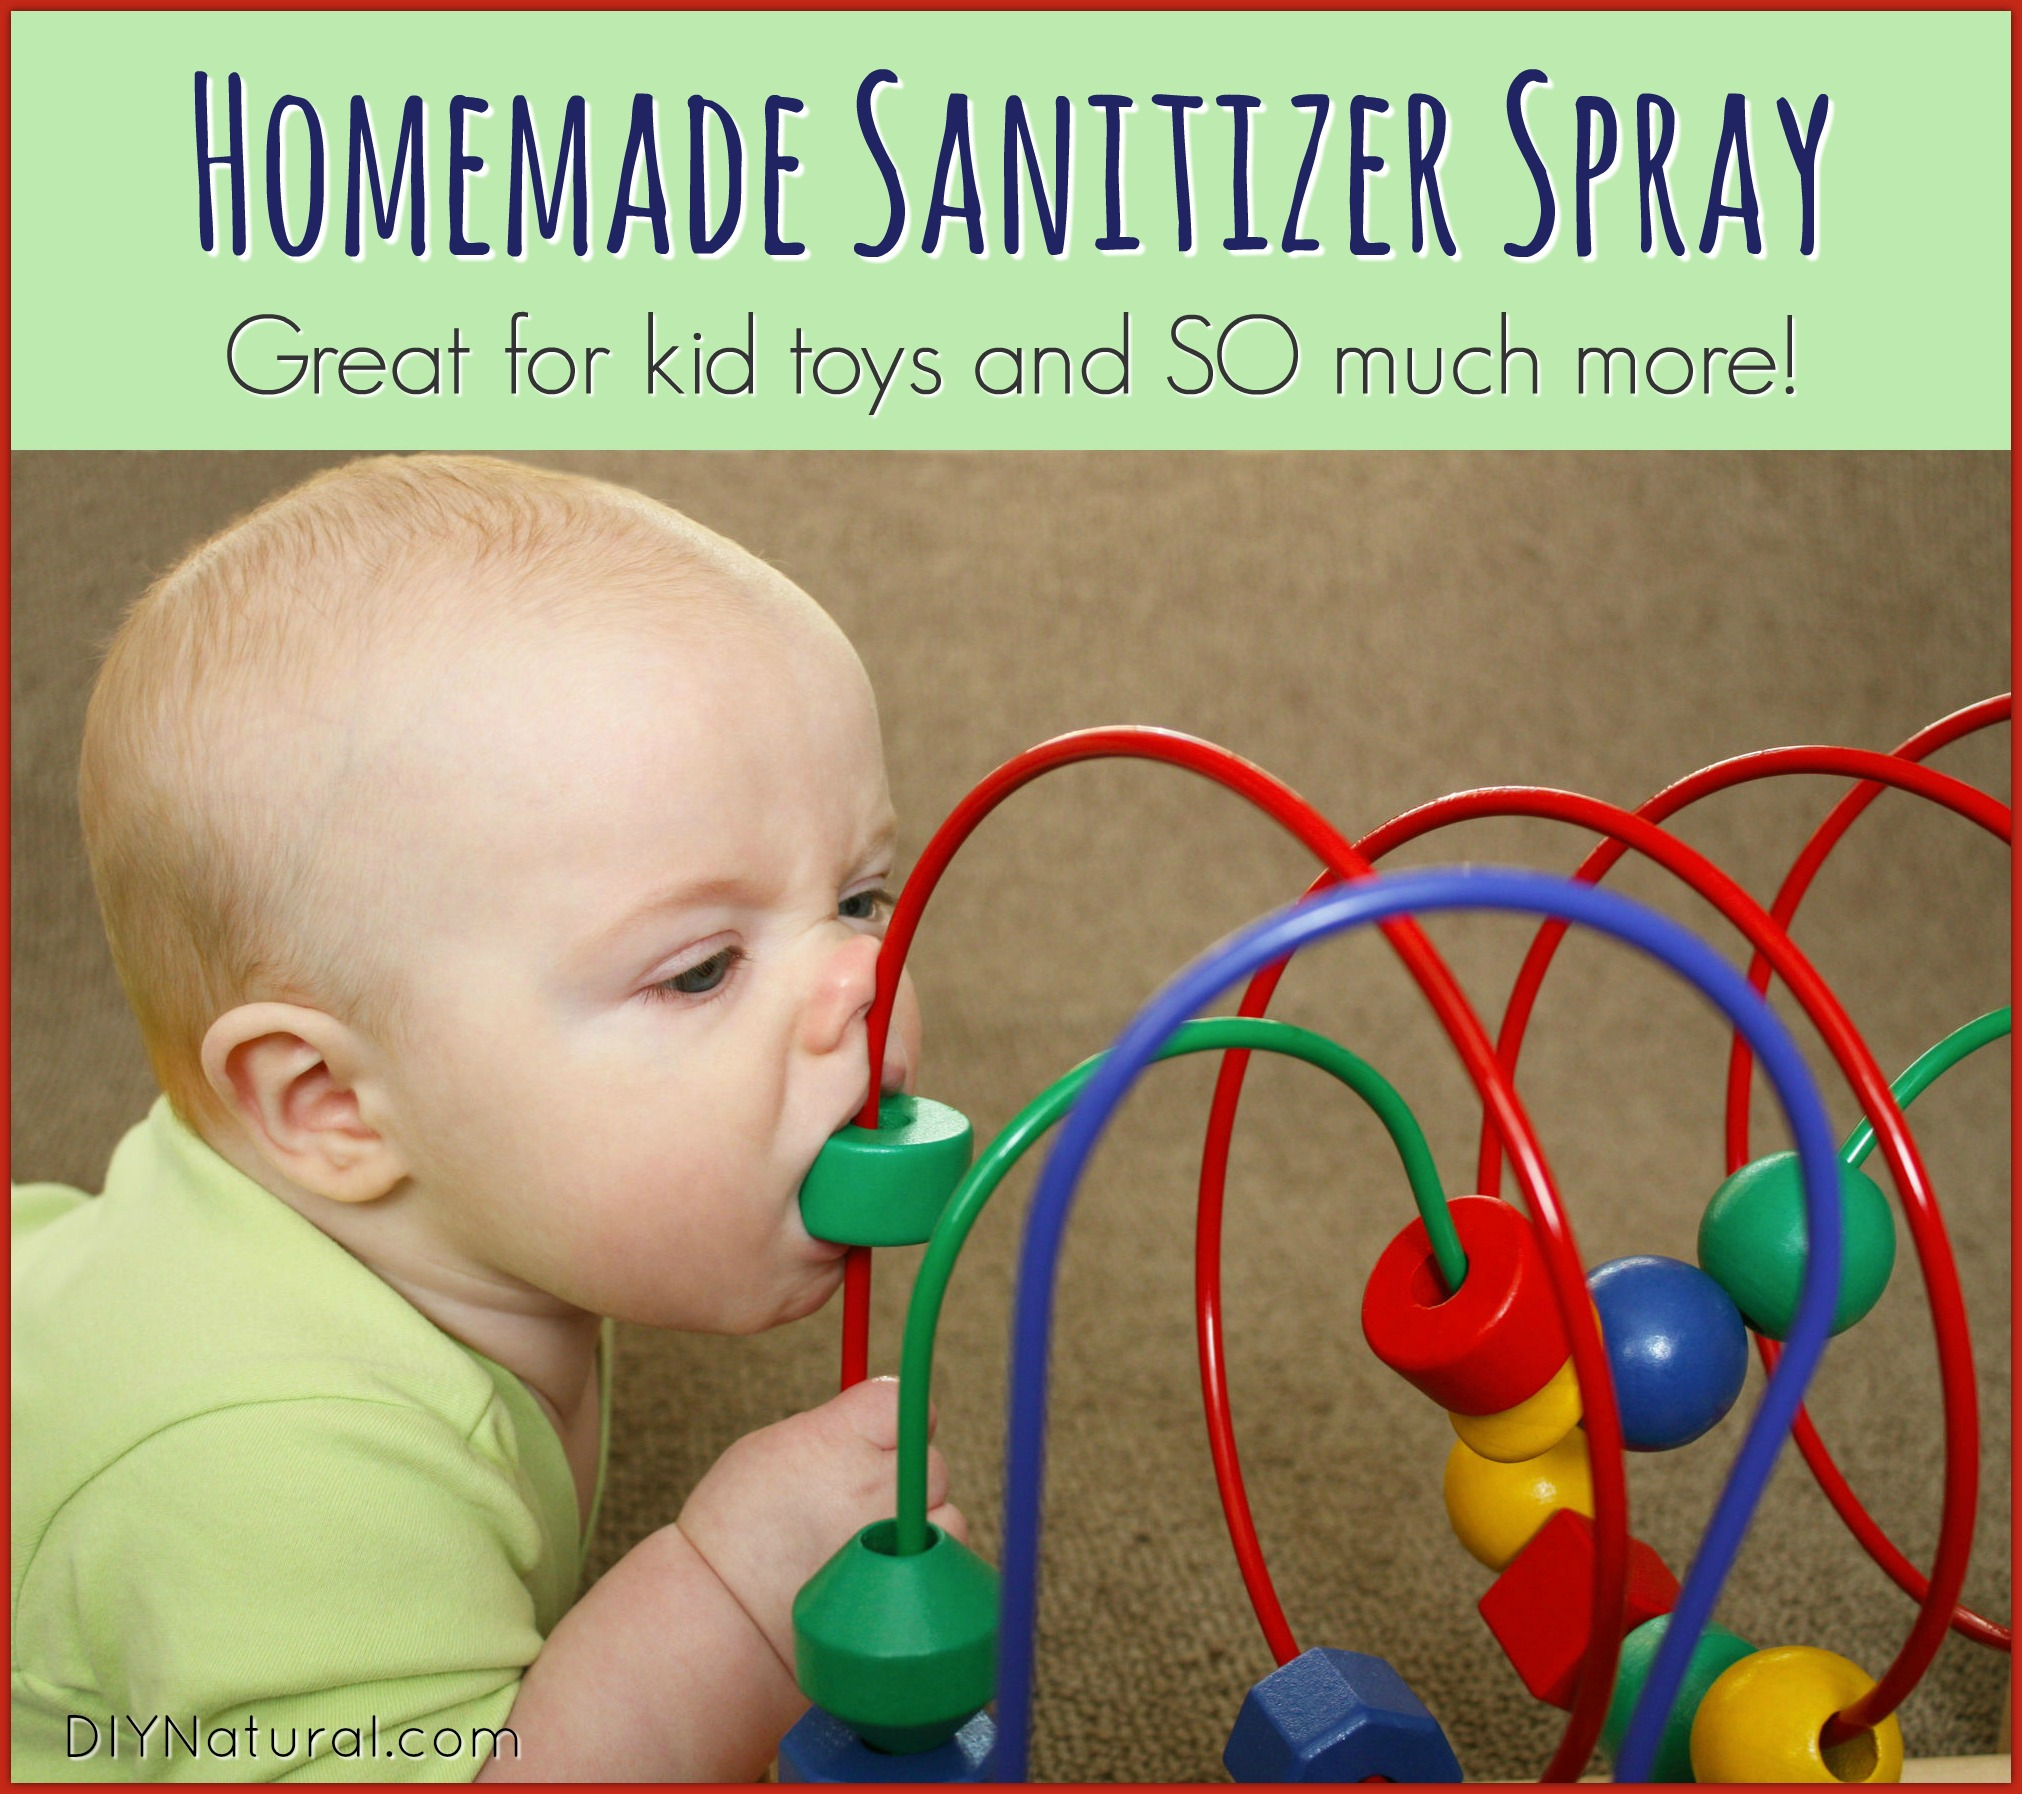 Sanitizing Bath Toys Naturally : Homemade sanitizer spray natural child toy cleaner more